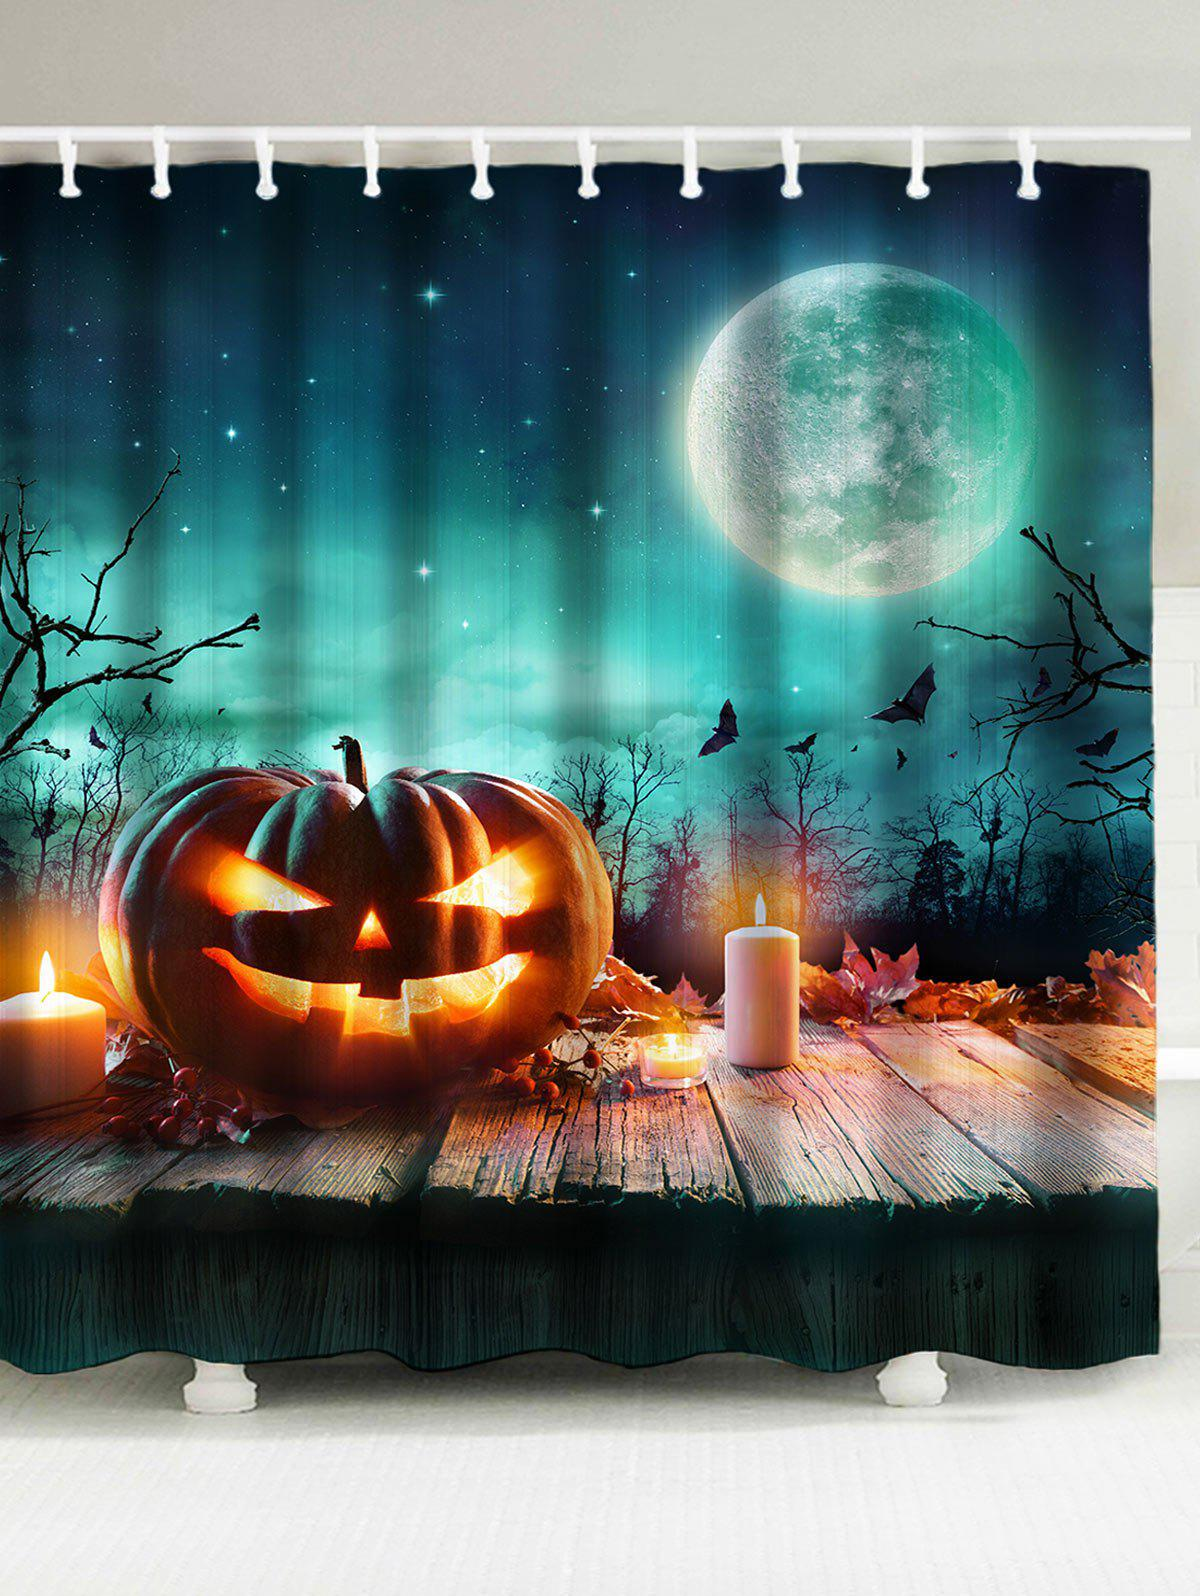 Waterproof 3D Shiny Pumpkin Print Halloween Shower Curtain 3d shiny pumpkin print halloween waterproof shower curtain